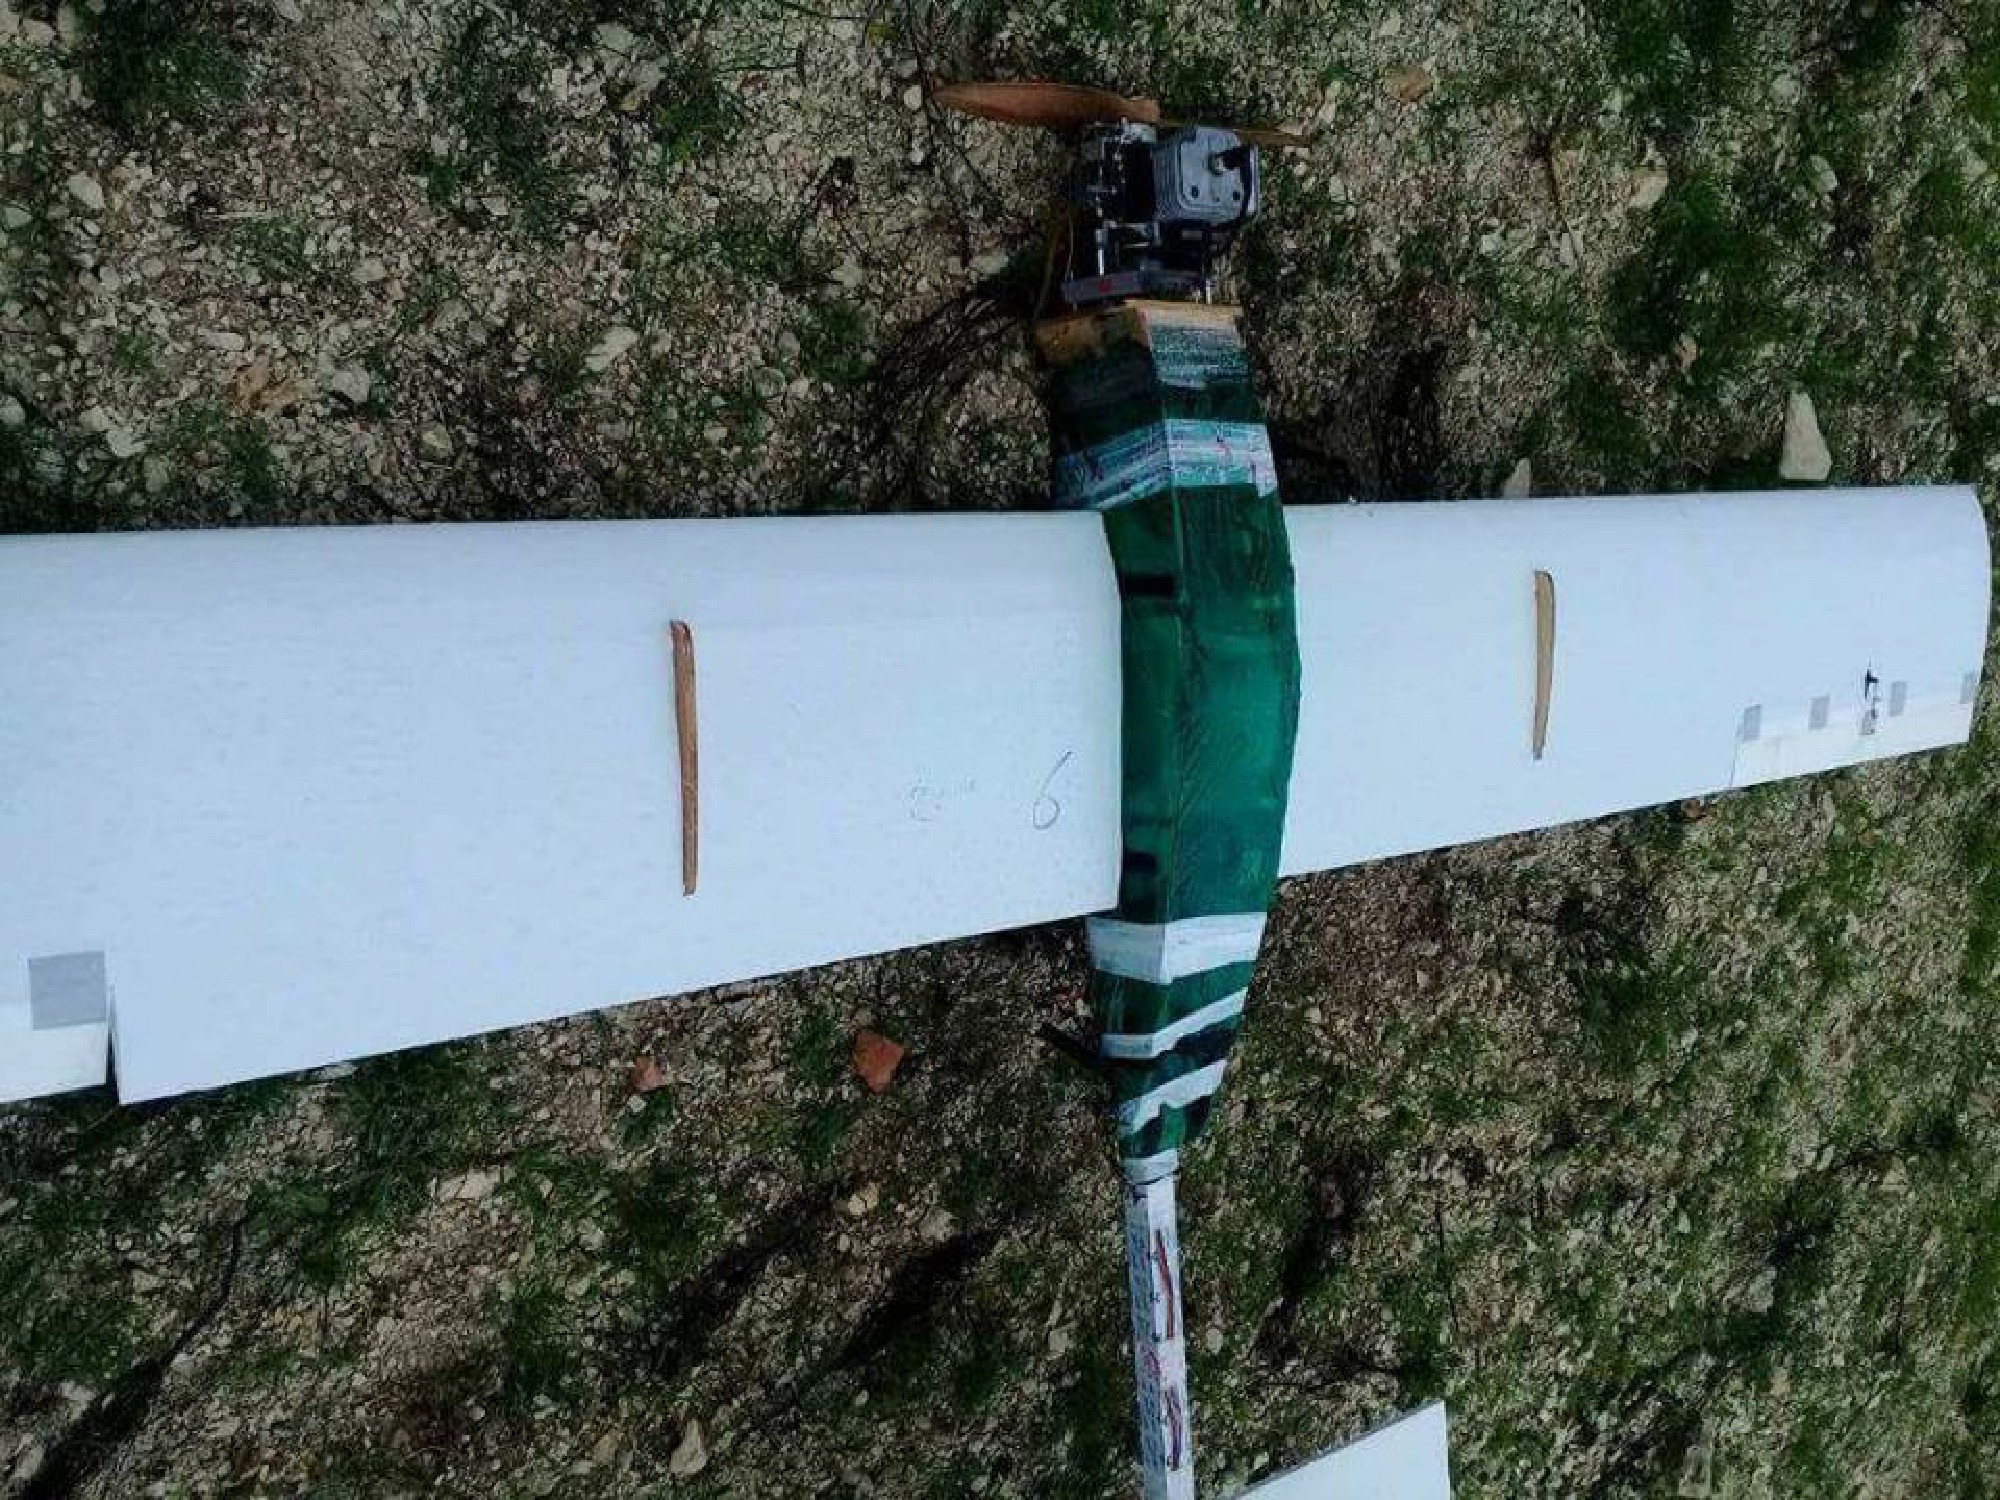 Syrian National Defense Forces Shoot Down Two Armed UAVs Near Hmeimim Airbase